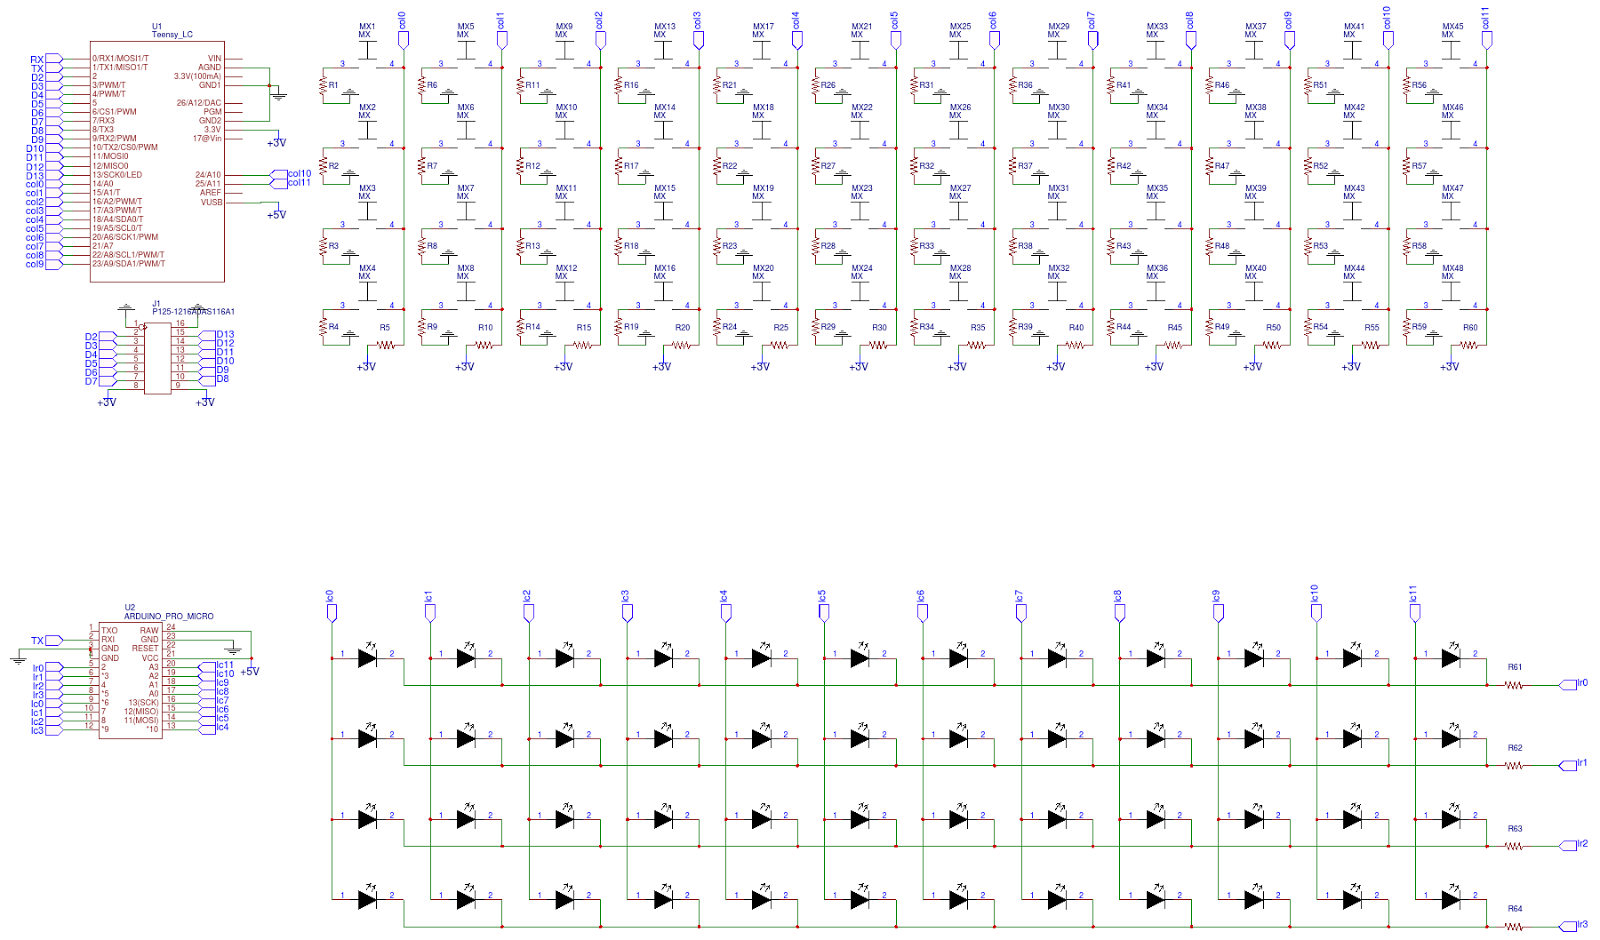 40 Keyboards Analog Matrix Keyboard This Is The Led Resistor Calculator For Leds In Parallel Schematic Shows 12 Channels And Resistors Voltage Dividers A Pro Micro Was Used To Control Same Way